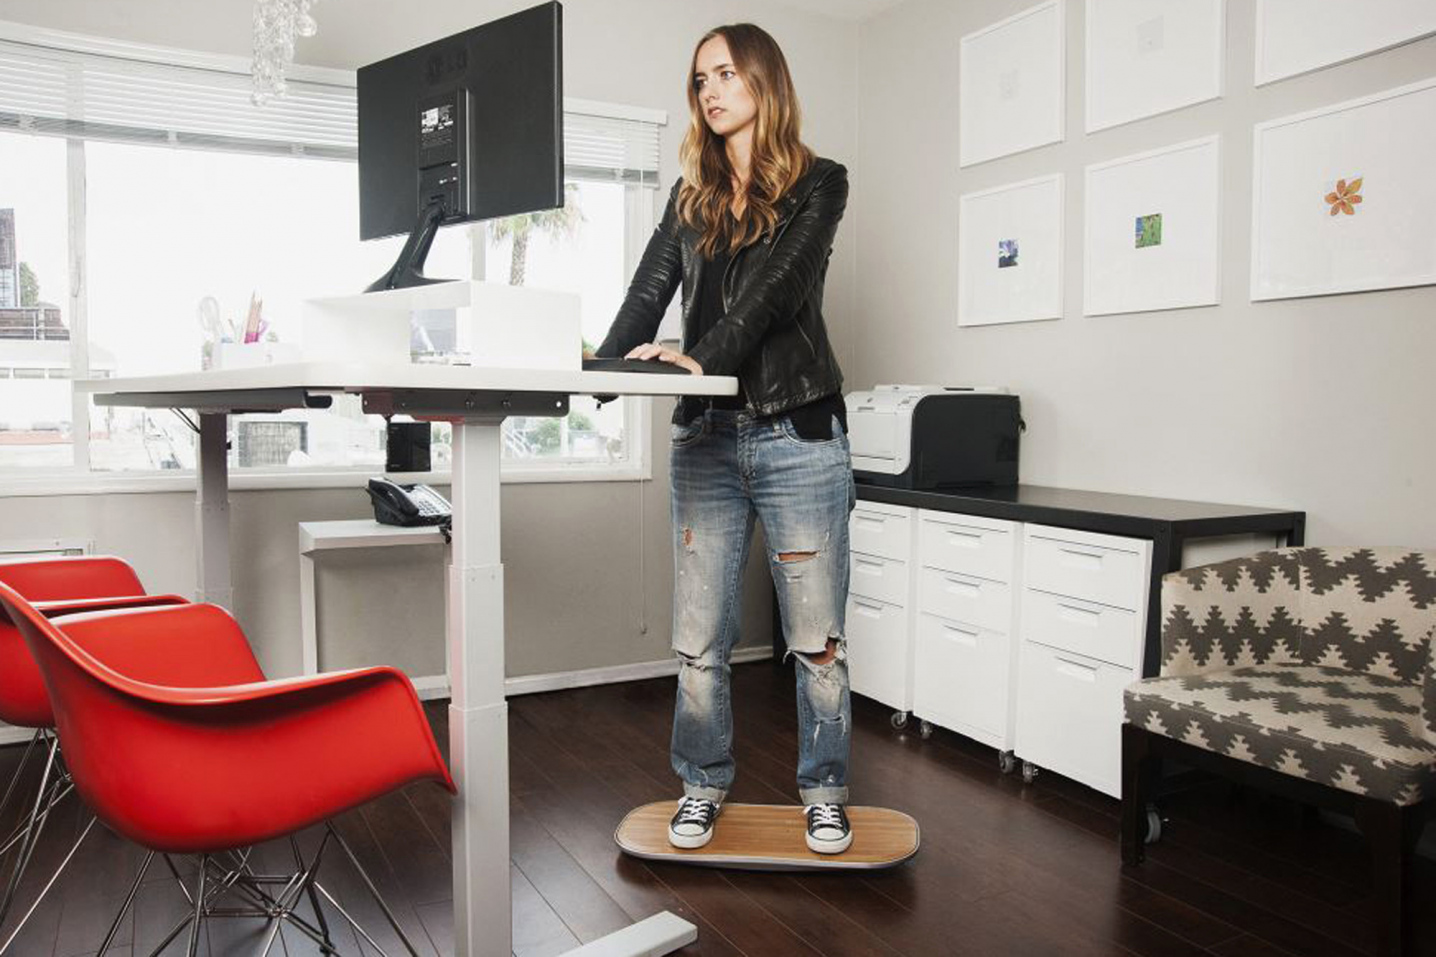 Top 5 Reasons to Buy That Standing Desk